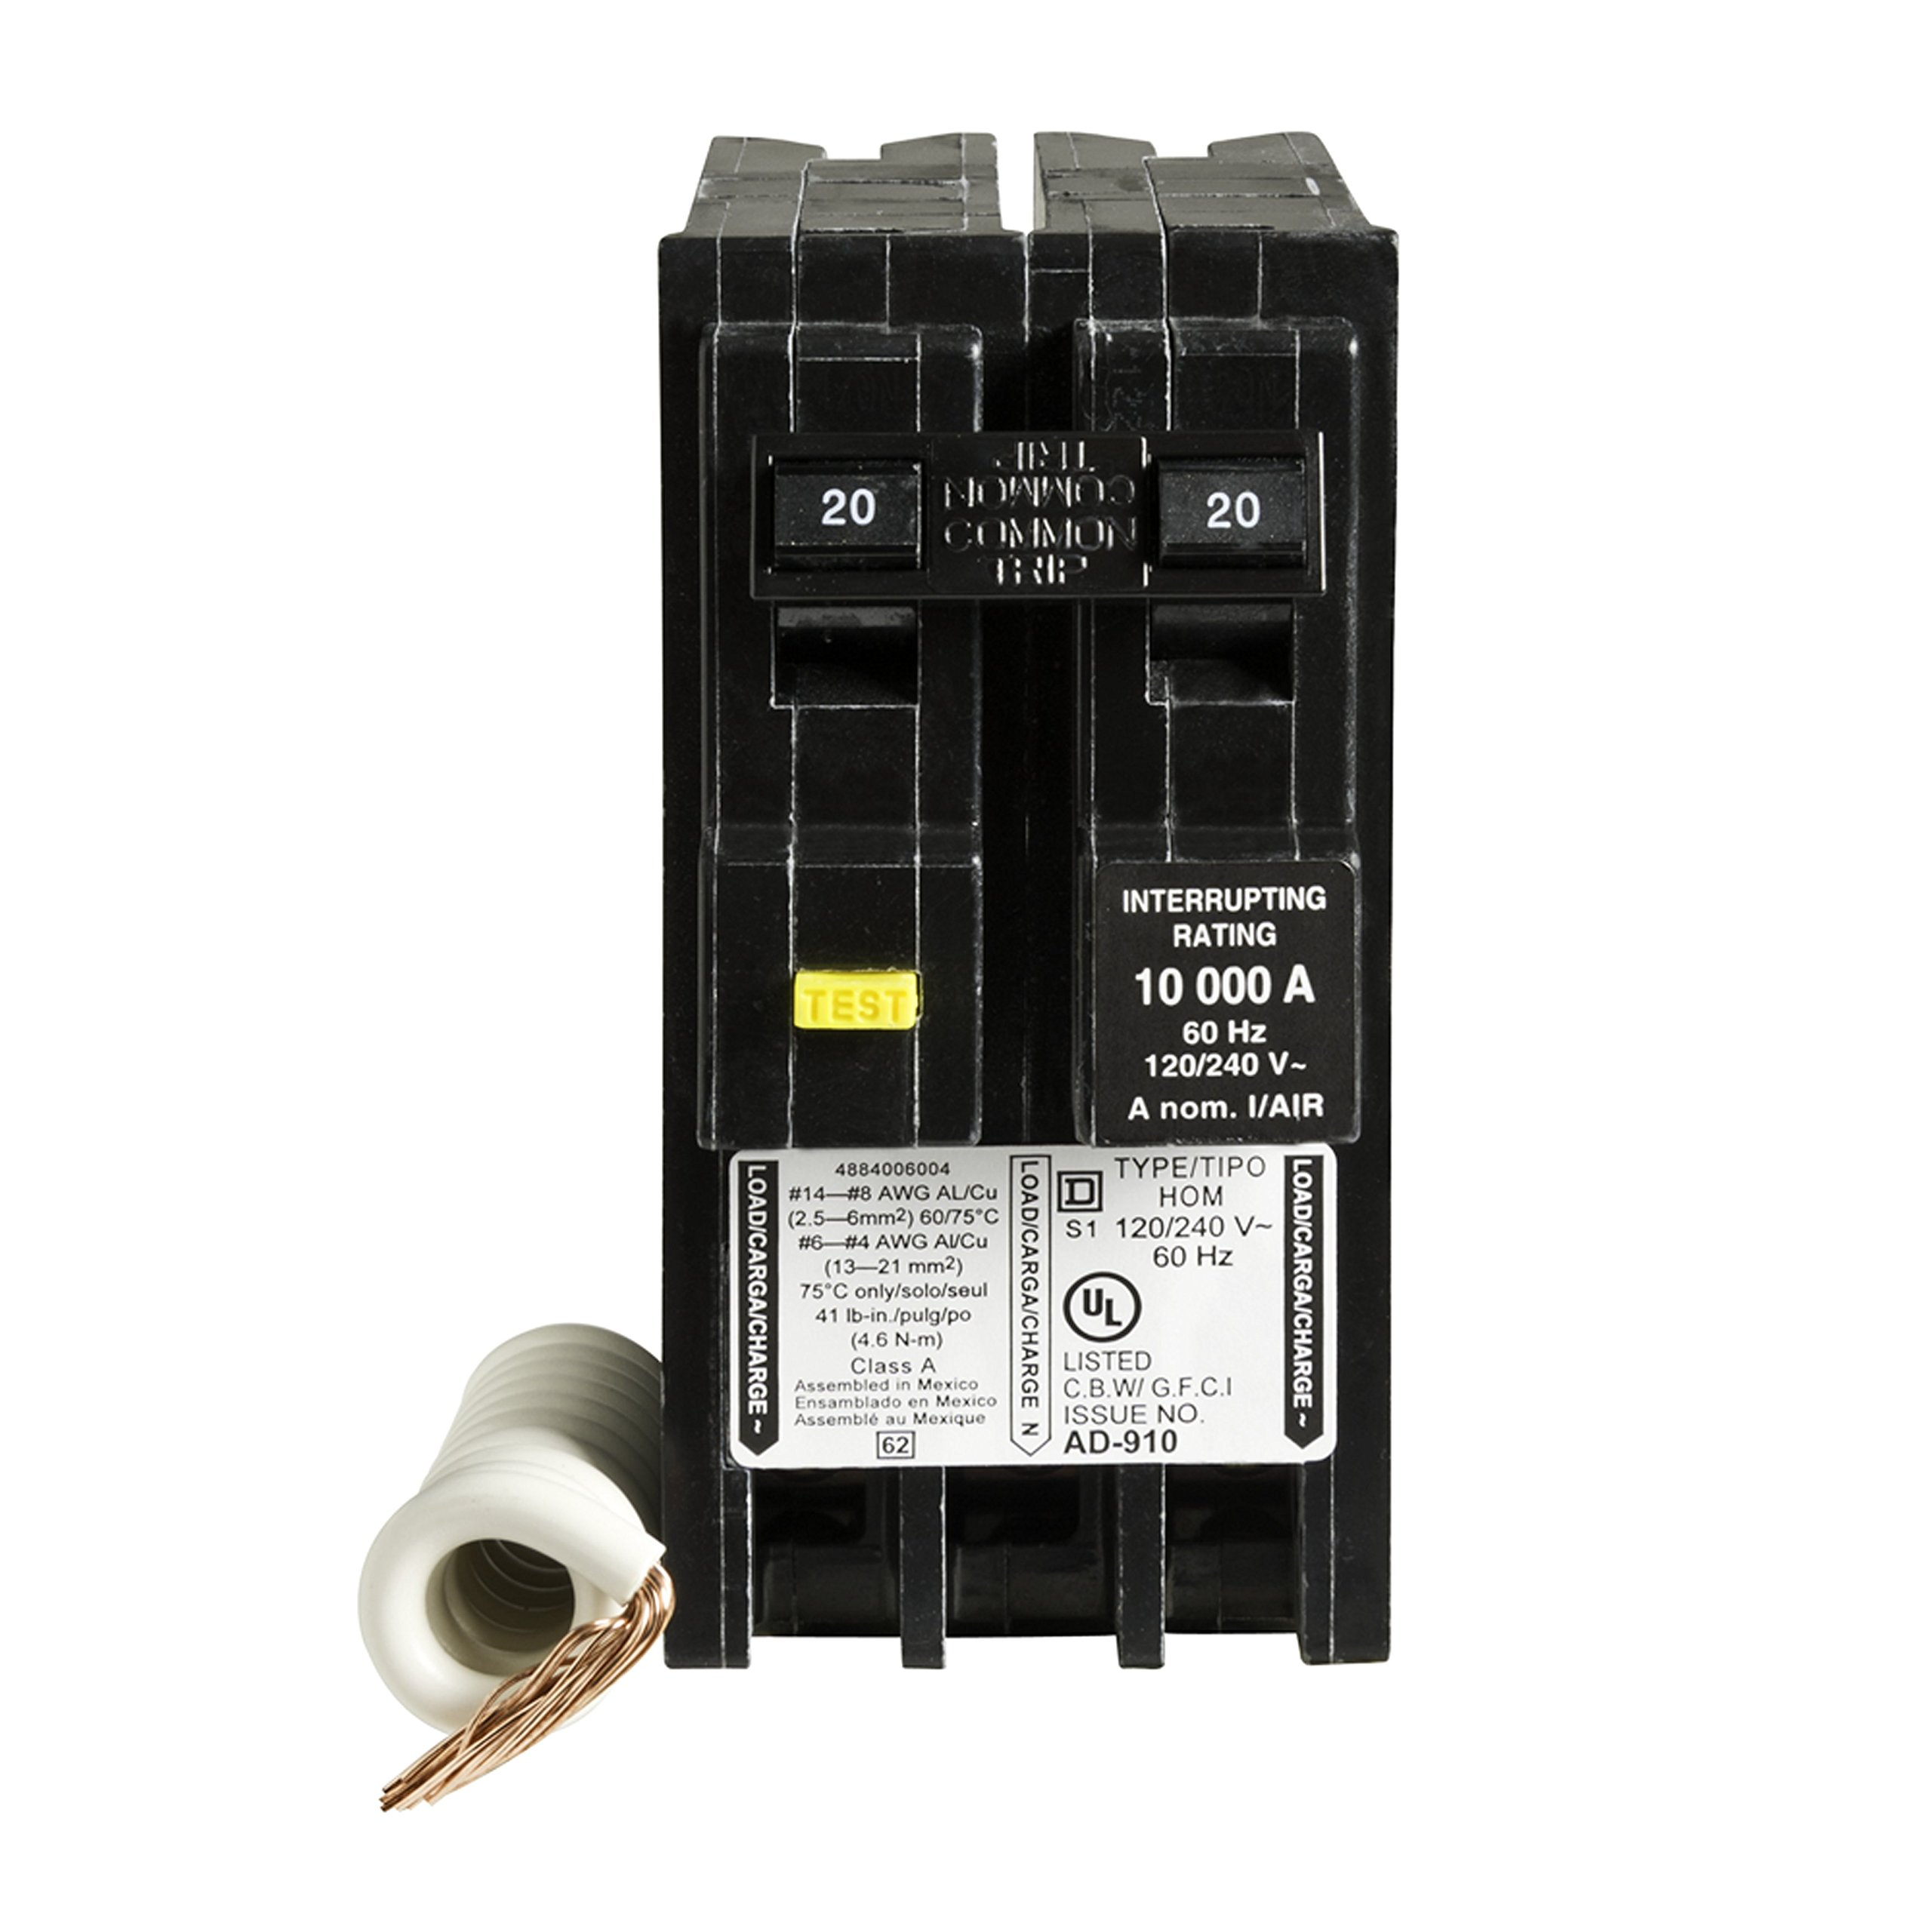 Square D by Schneider Electric HOM220GFIC Homeline 20 Amp Two-Pole GFCI Circuit Breaker, , by Square D by Schneider Electric